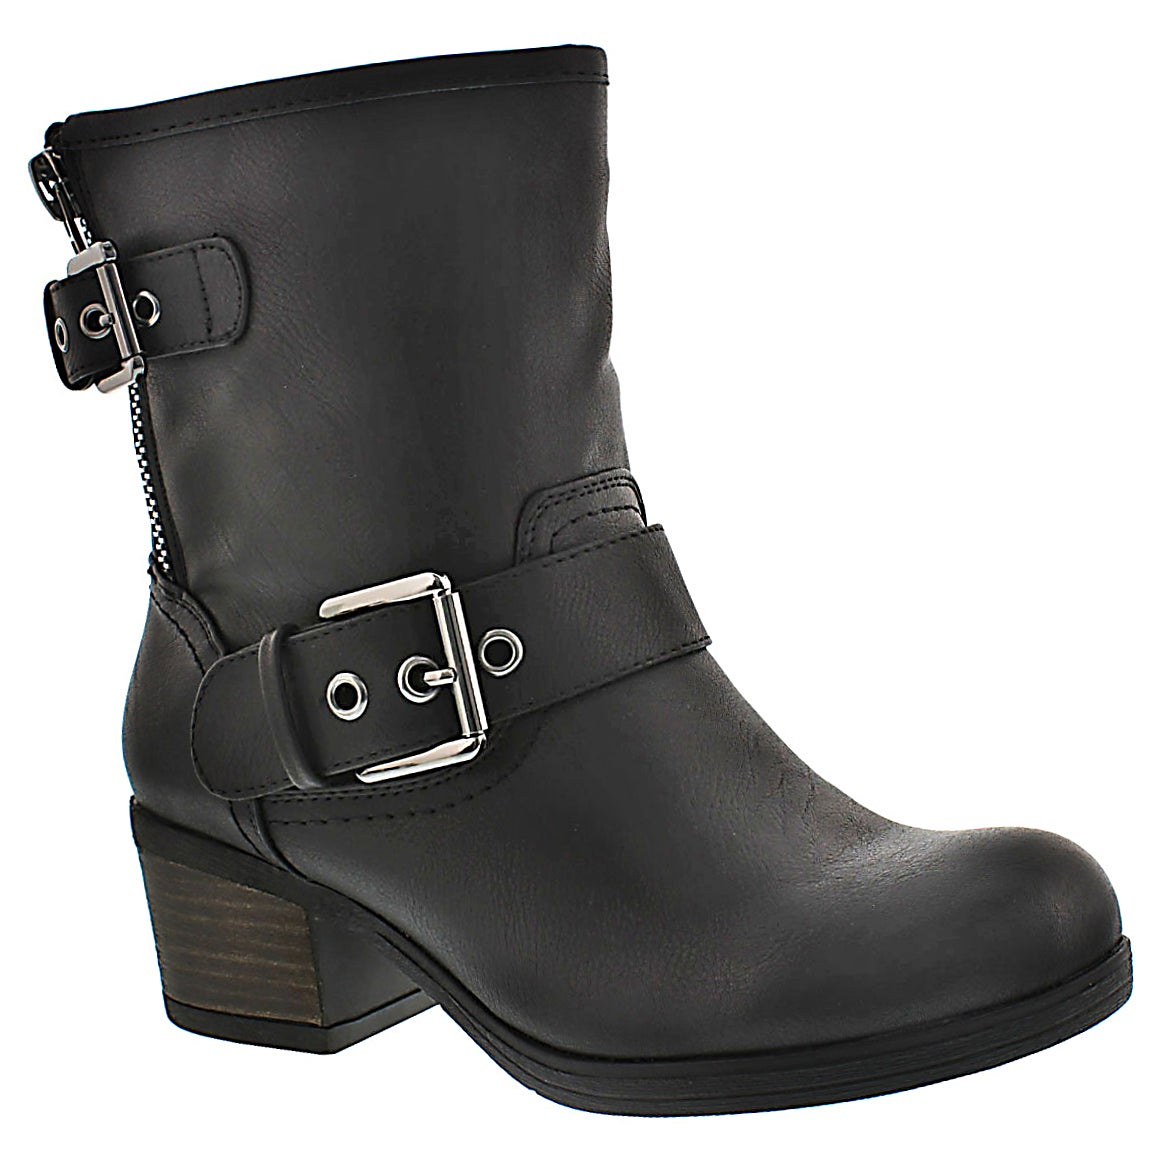 Women's BOBBI JO black casual booties